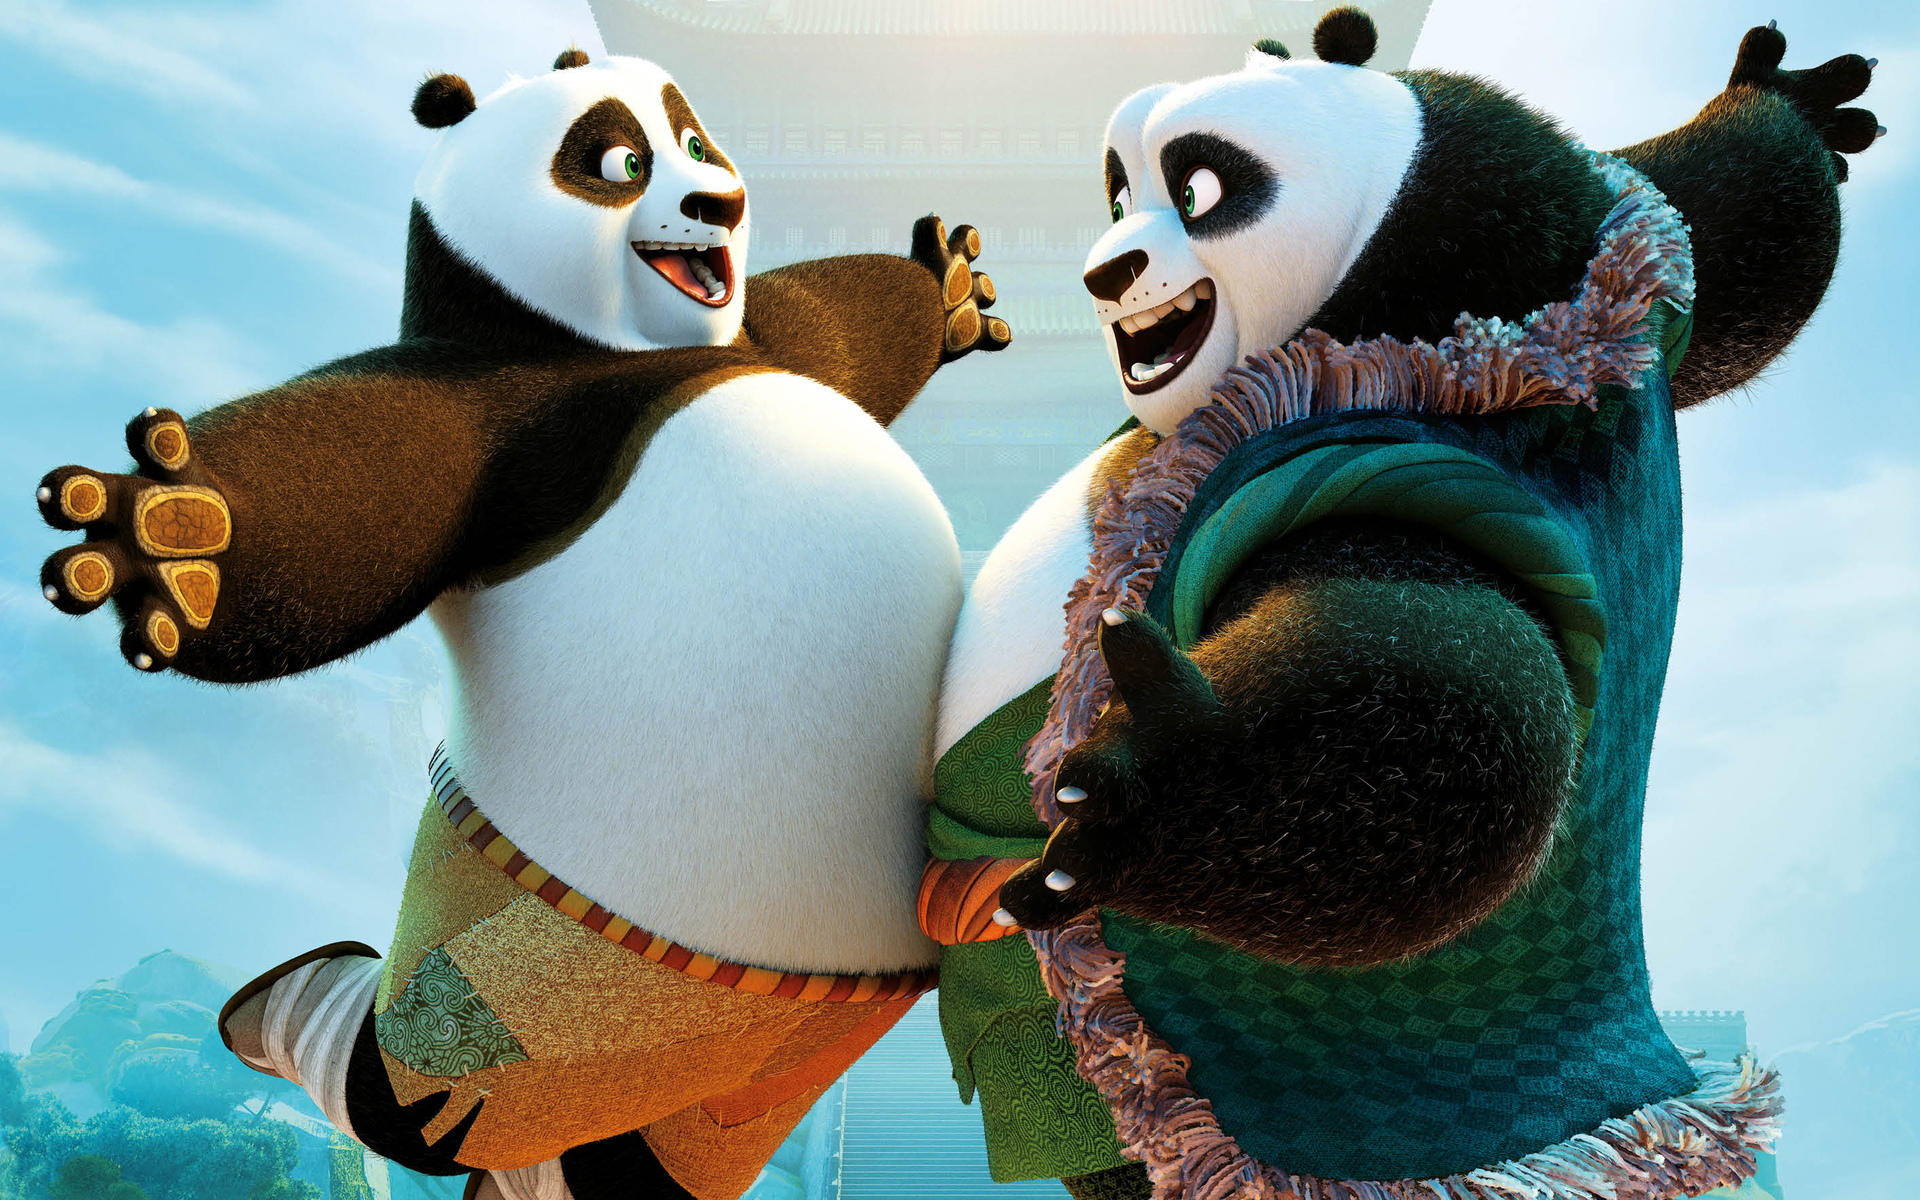 1920x1200 kung fu panda 3 1080p resolution hd 4k wallpapers, images